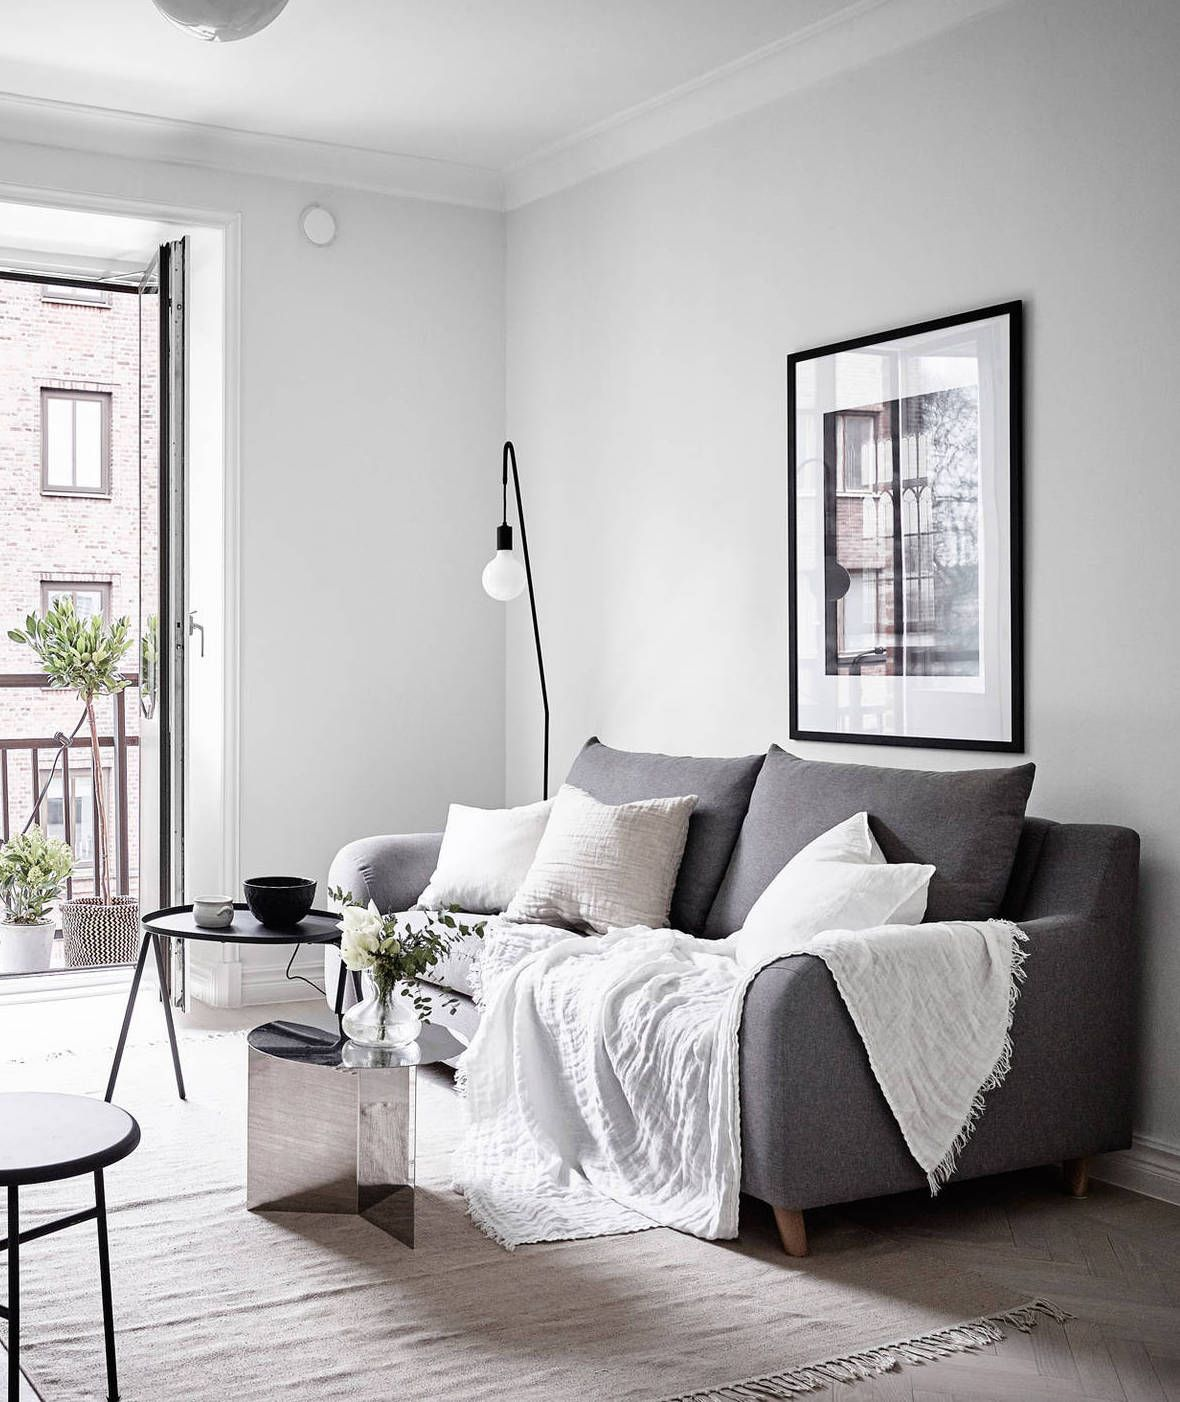 Scandinavian Interior Apartment With Mix Of Gray Tones: 30+ Minimalist Living Room Ideas & Inspiration To Make The